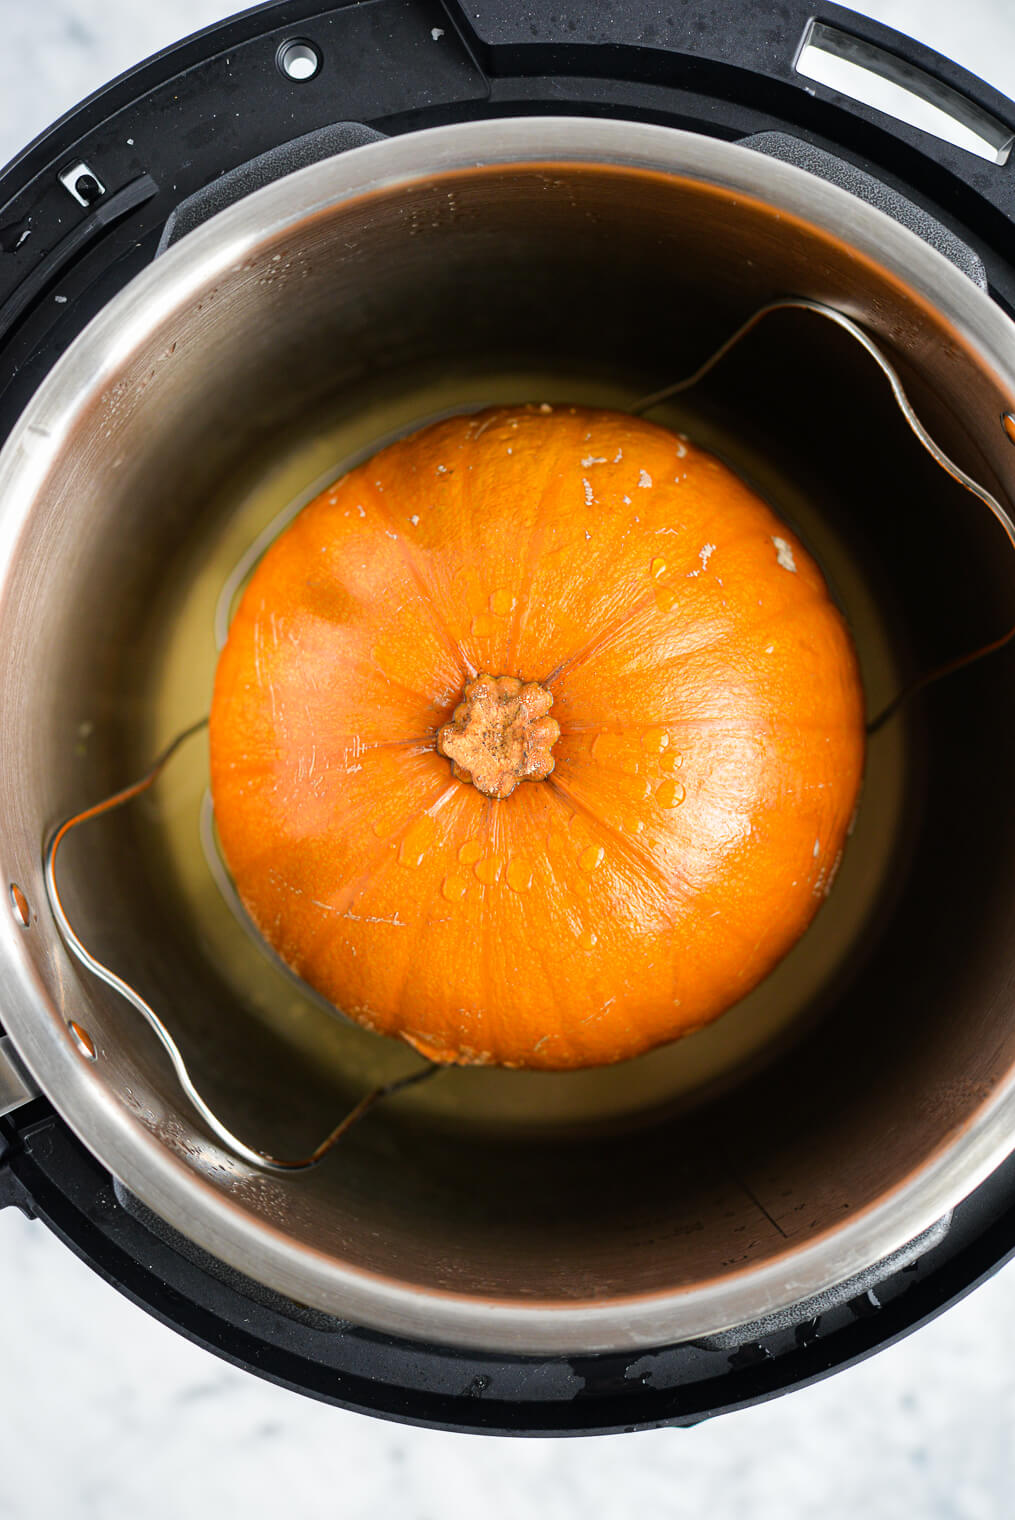 the top view of an open instant pot with a baking pumpkin sitting inside of it on the steamer grate, all on a marble surface